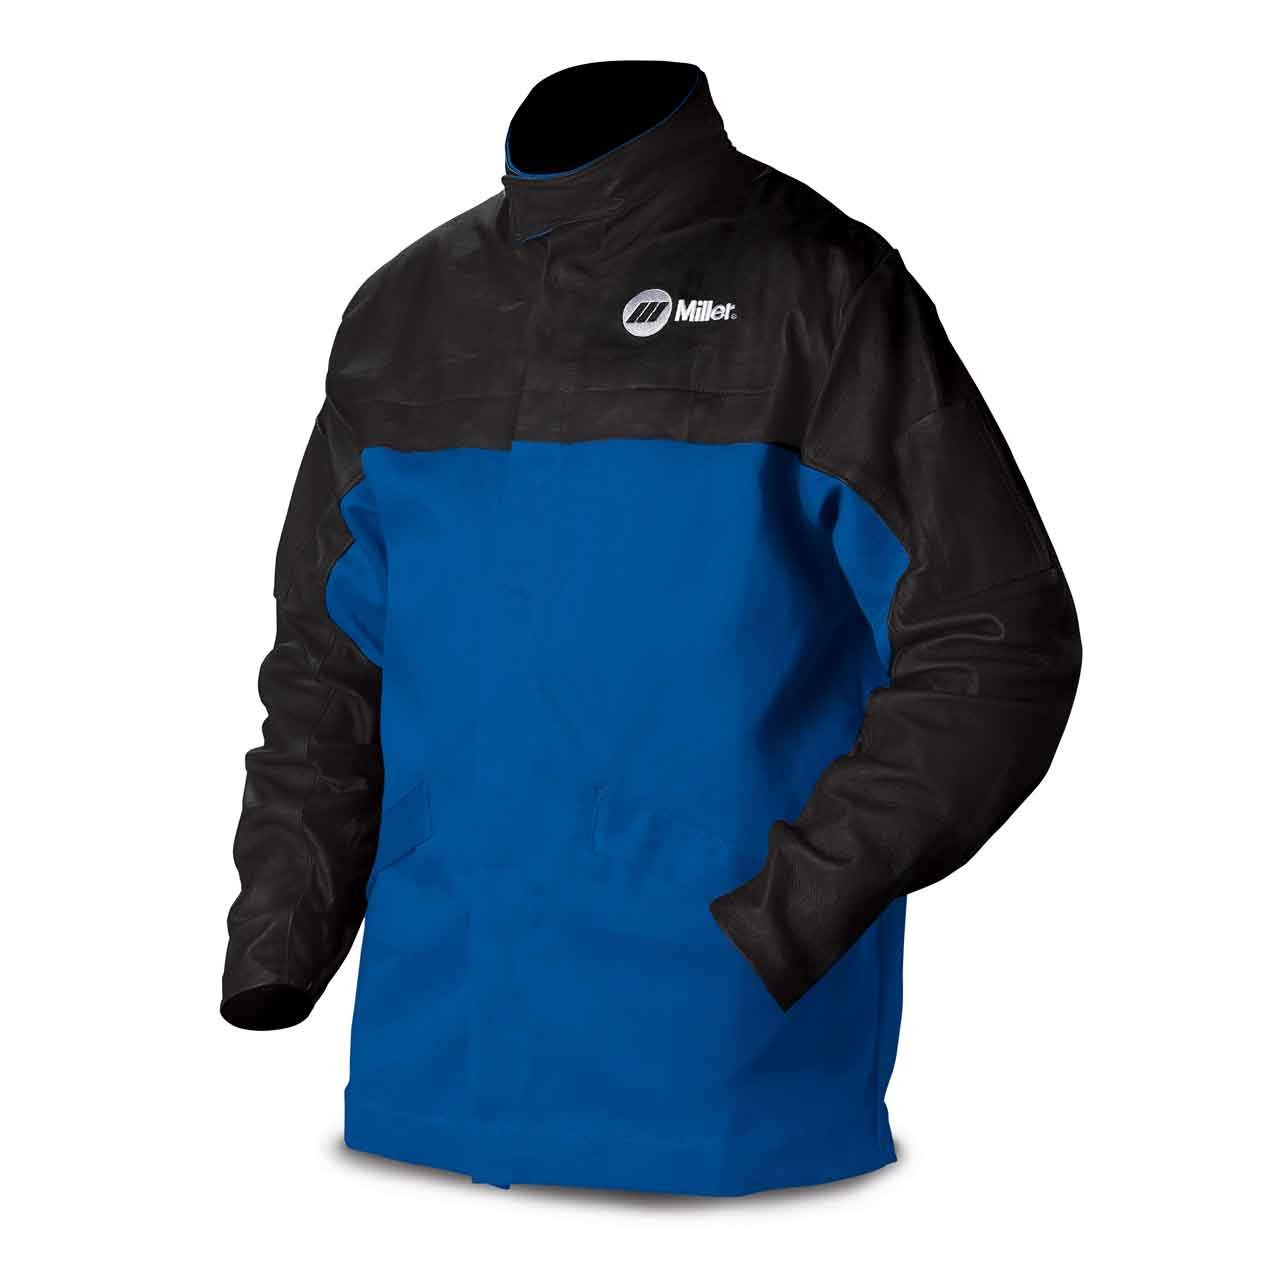 Combo Weld Jkt, Royal/Blk, Ctn/Leather, S by Miller Electric (Image #1)